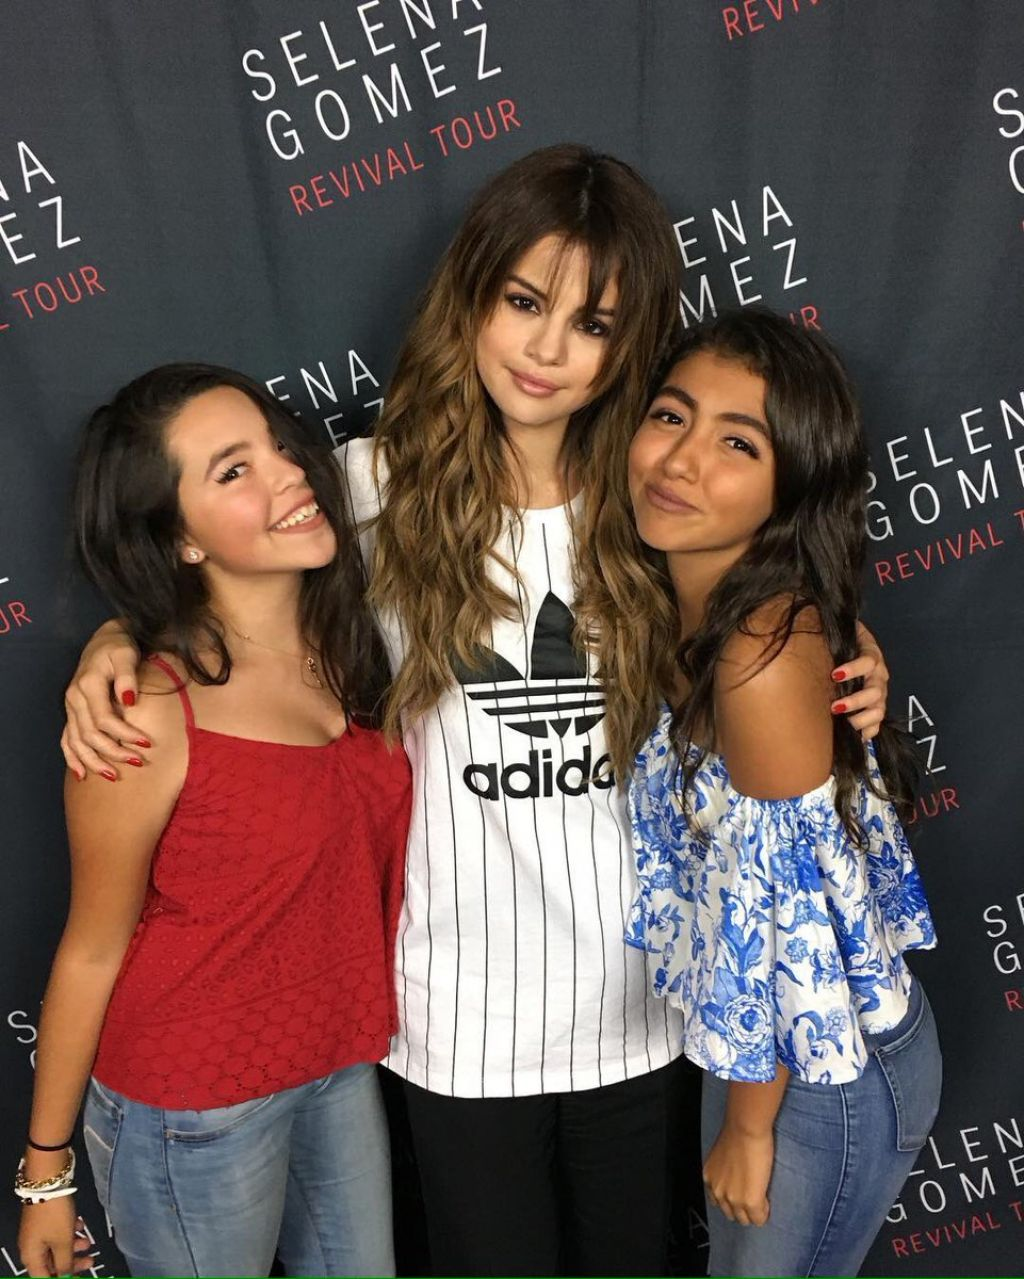 Selena Gomez Meet Greet At The Valley View Casino Center In San